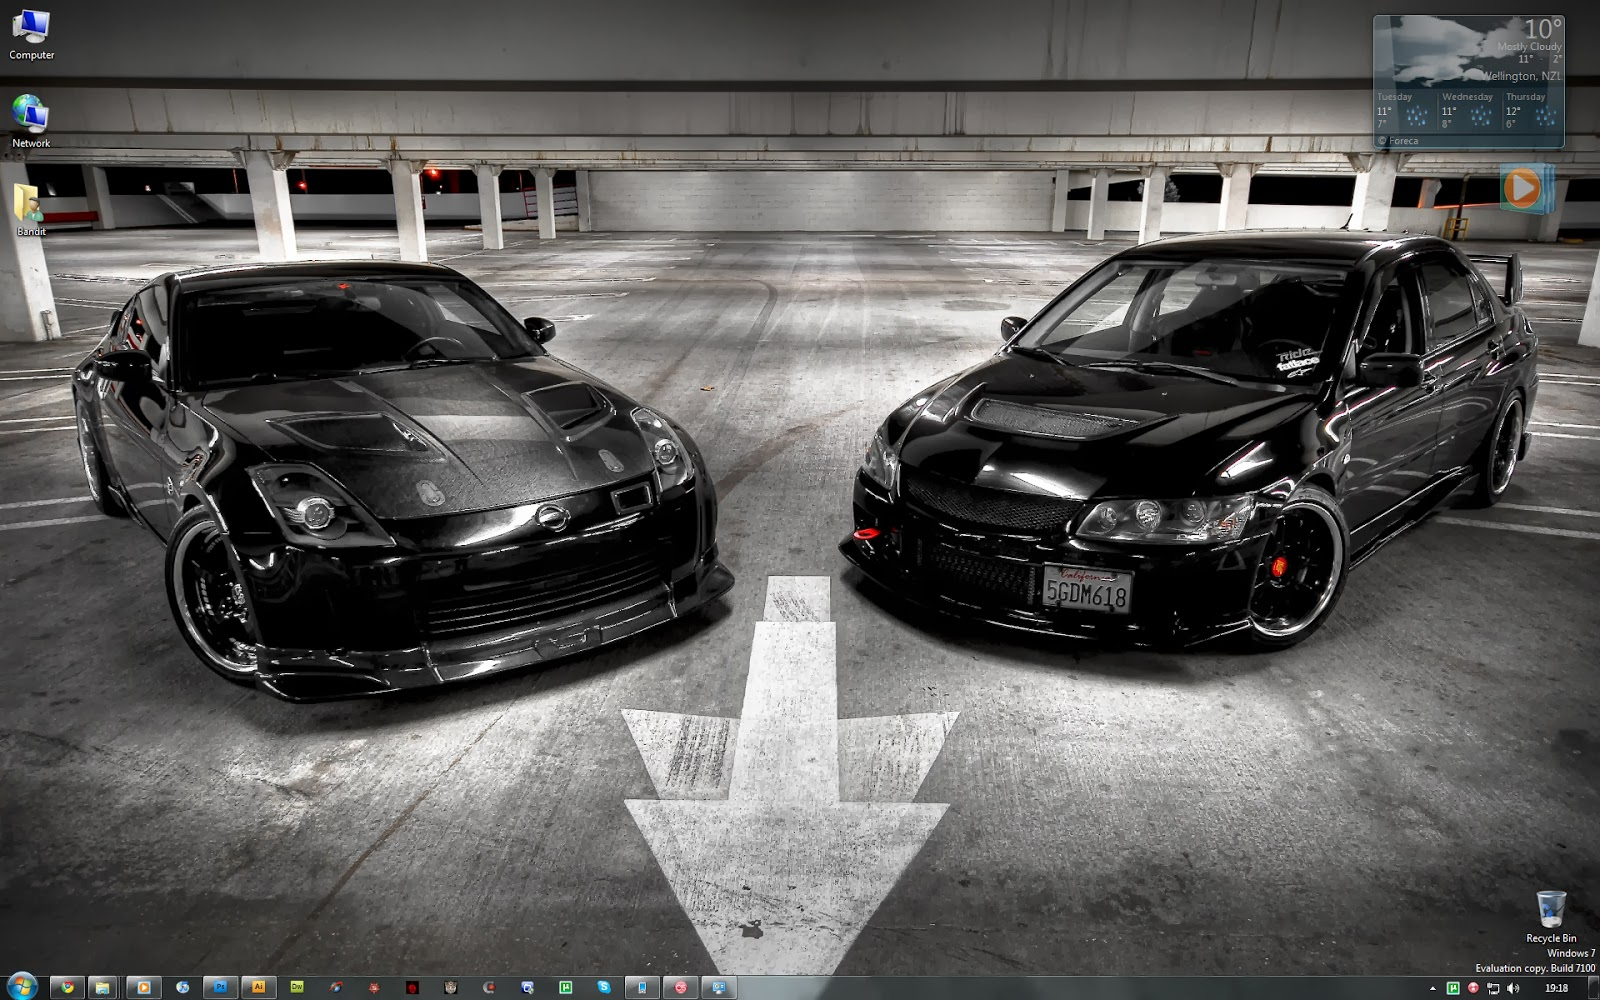 Clic Car Windows 7 Theme This Is My Blog Very Collected Pictures Of Pleas Left Click And Enjoy